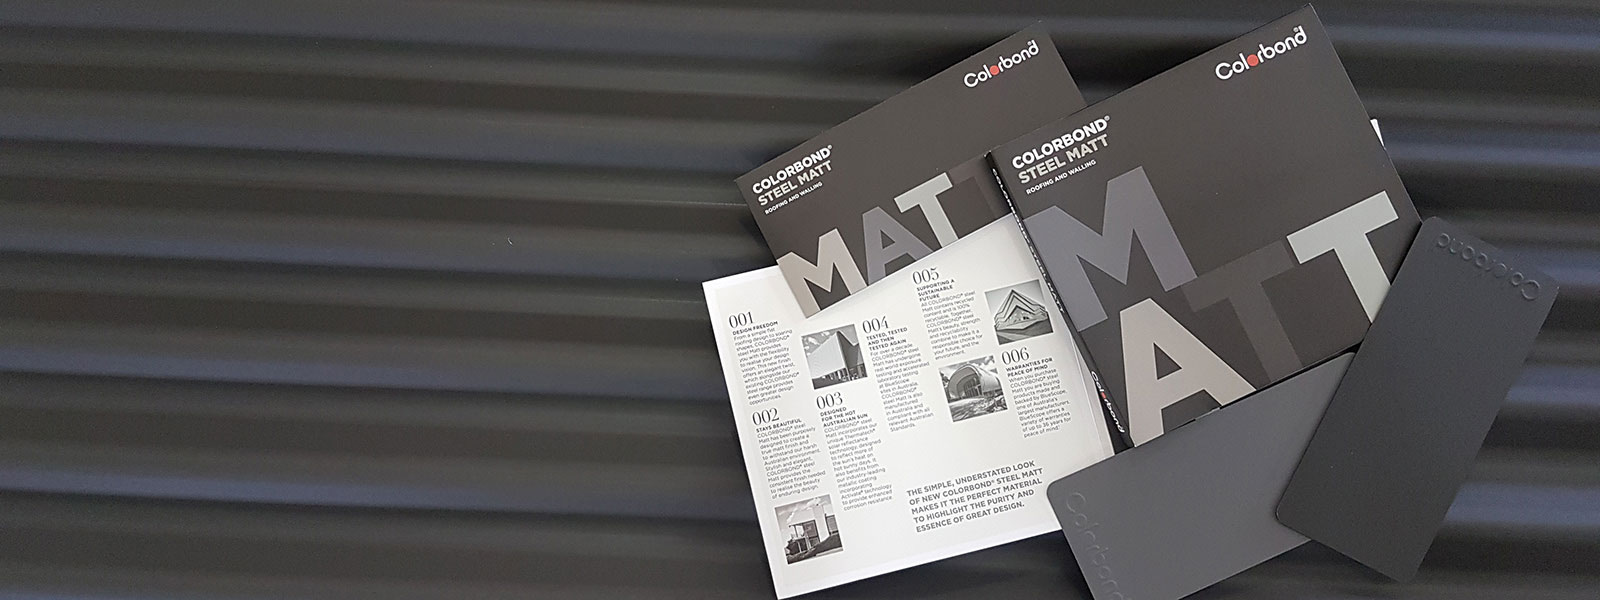 Colorbond sheets brisbane - Did You Know There Is A Brand New Colorbond Roofing Finish Available It S Called Colorbond Steel Matt And You Can Find Out More Here